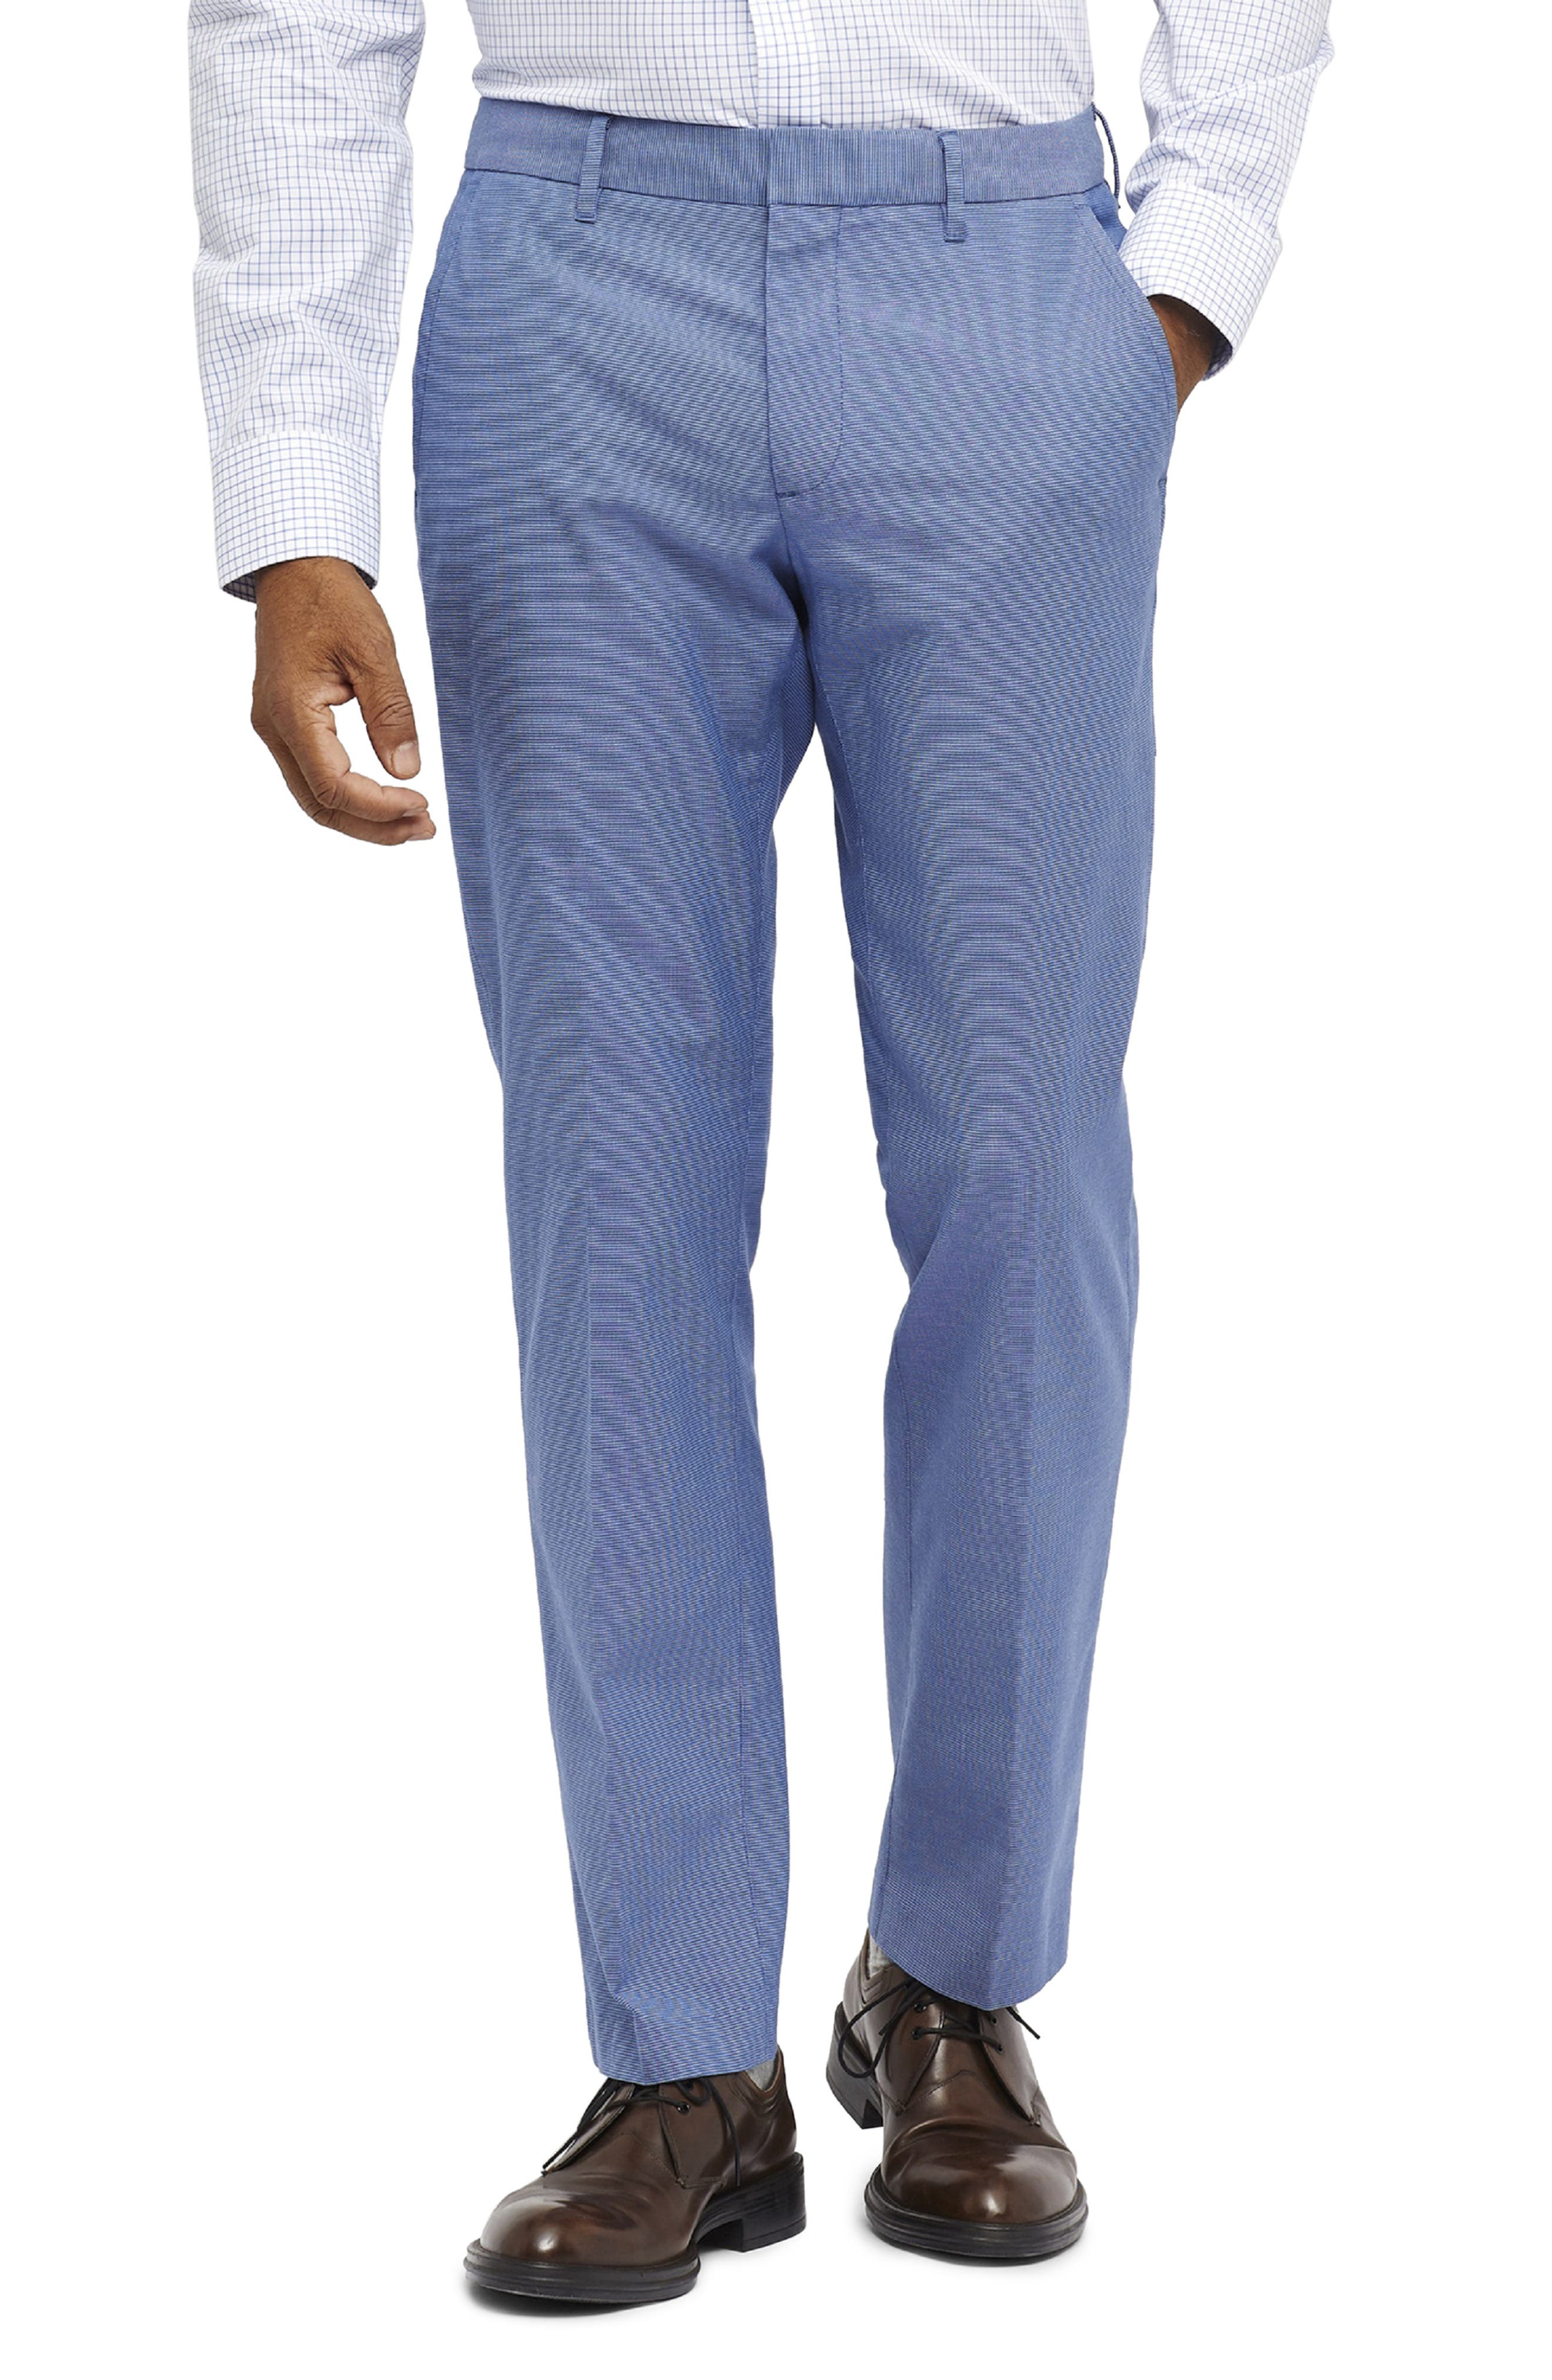 A sharp look for any day of the week, these flat-front pants feature a trim (but not tight) fit and a finish of soft, easy-care stretch cotton. Style Name: Bonobos Weekday Warrior Tailored Fit Stretch Pants. Style Number: 5904101. Available in stores.